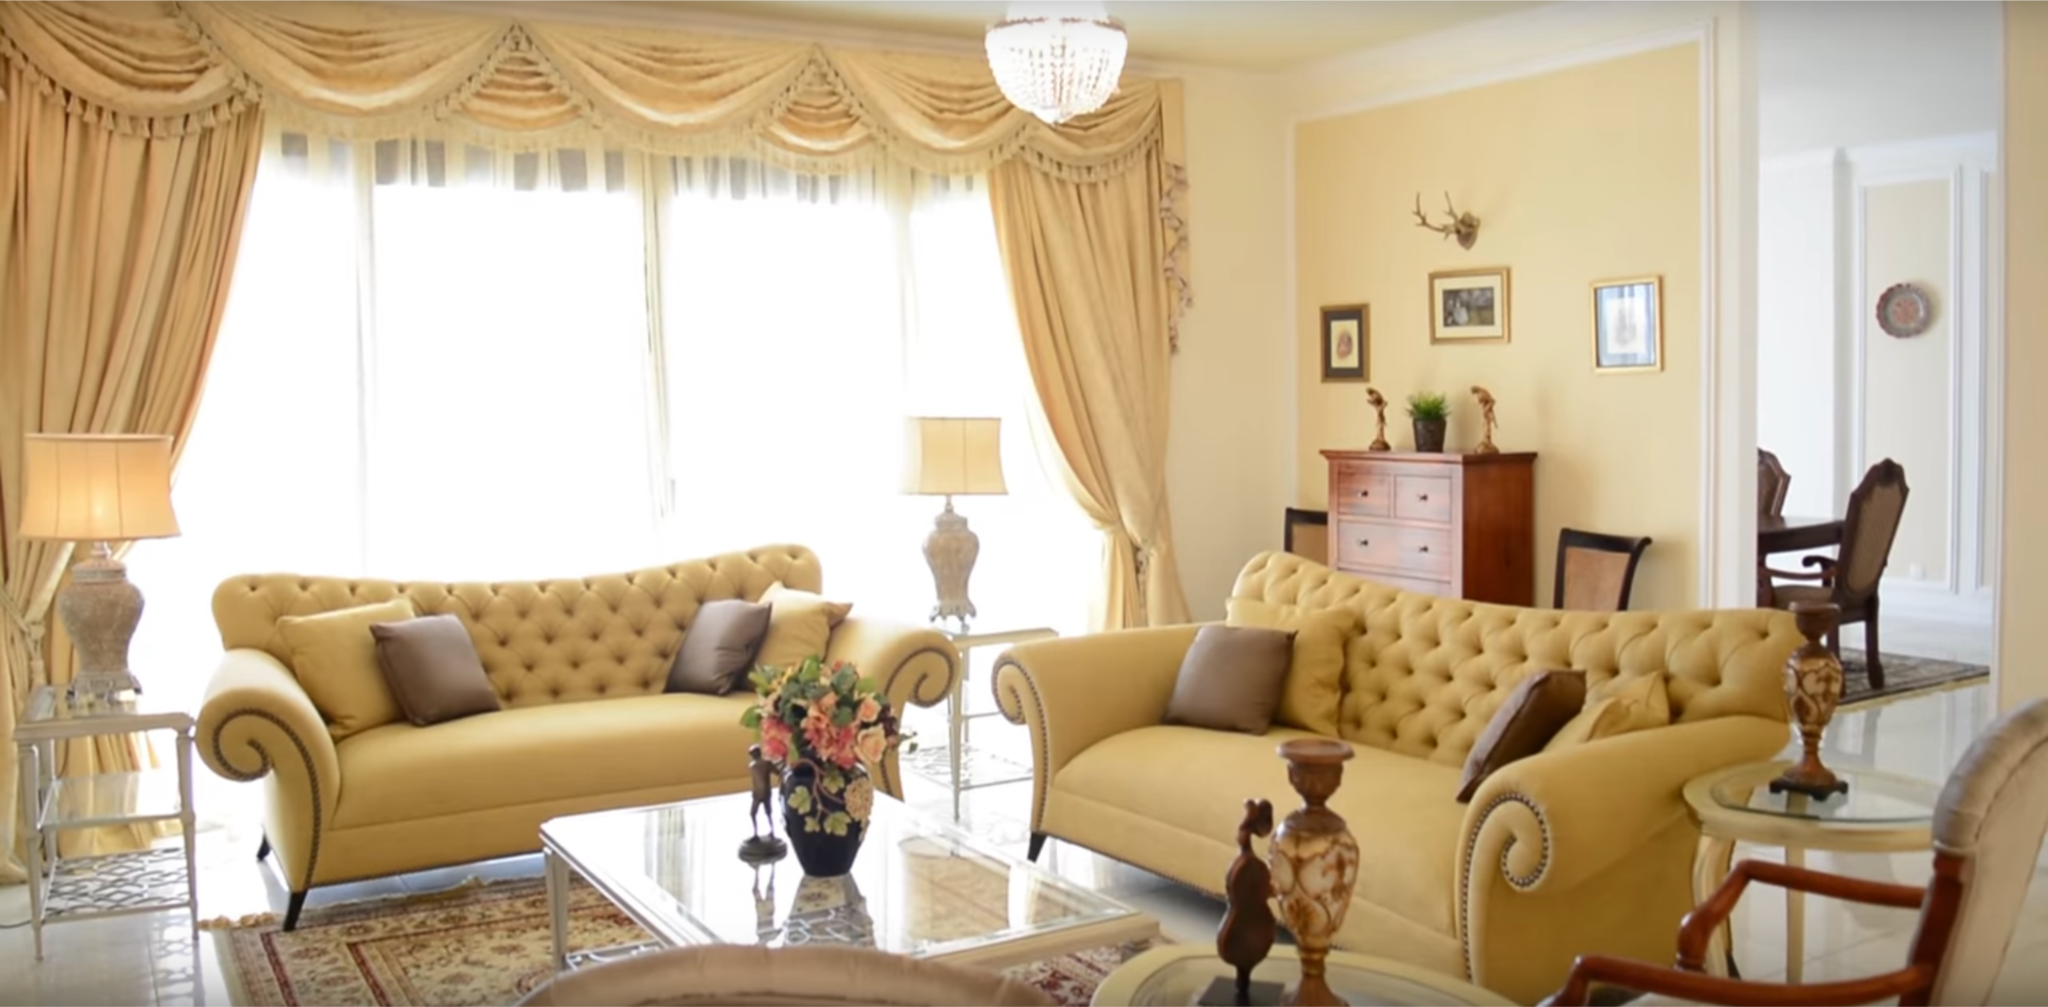 An Old English Luxury Apartment in Lagos by Essential Interiors Consultancy